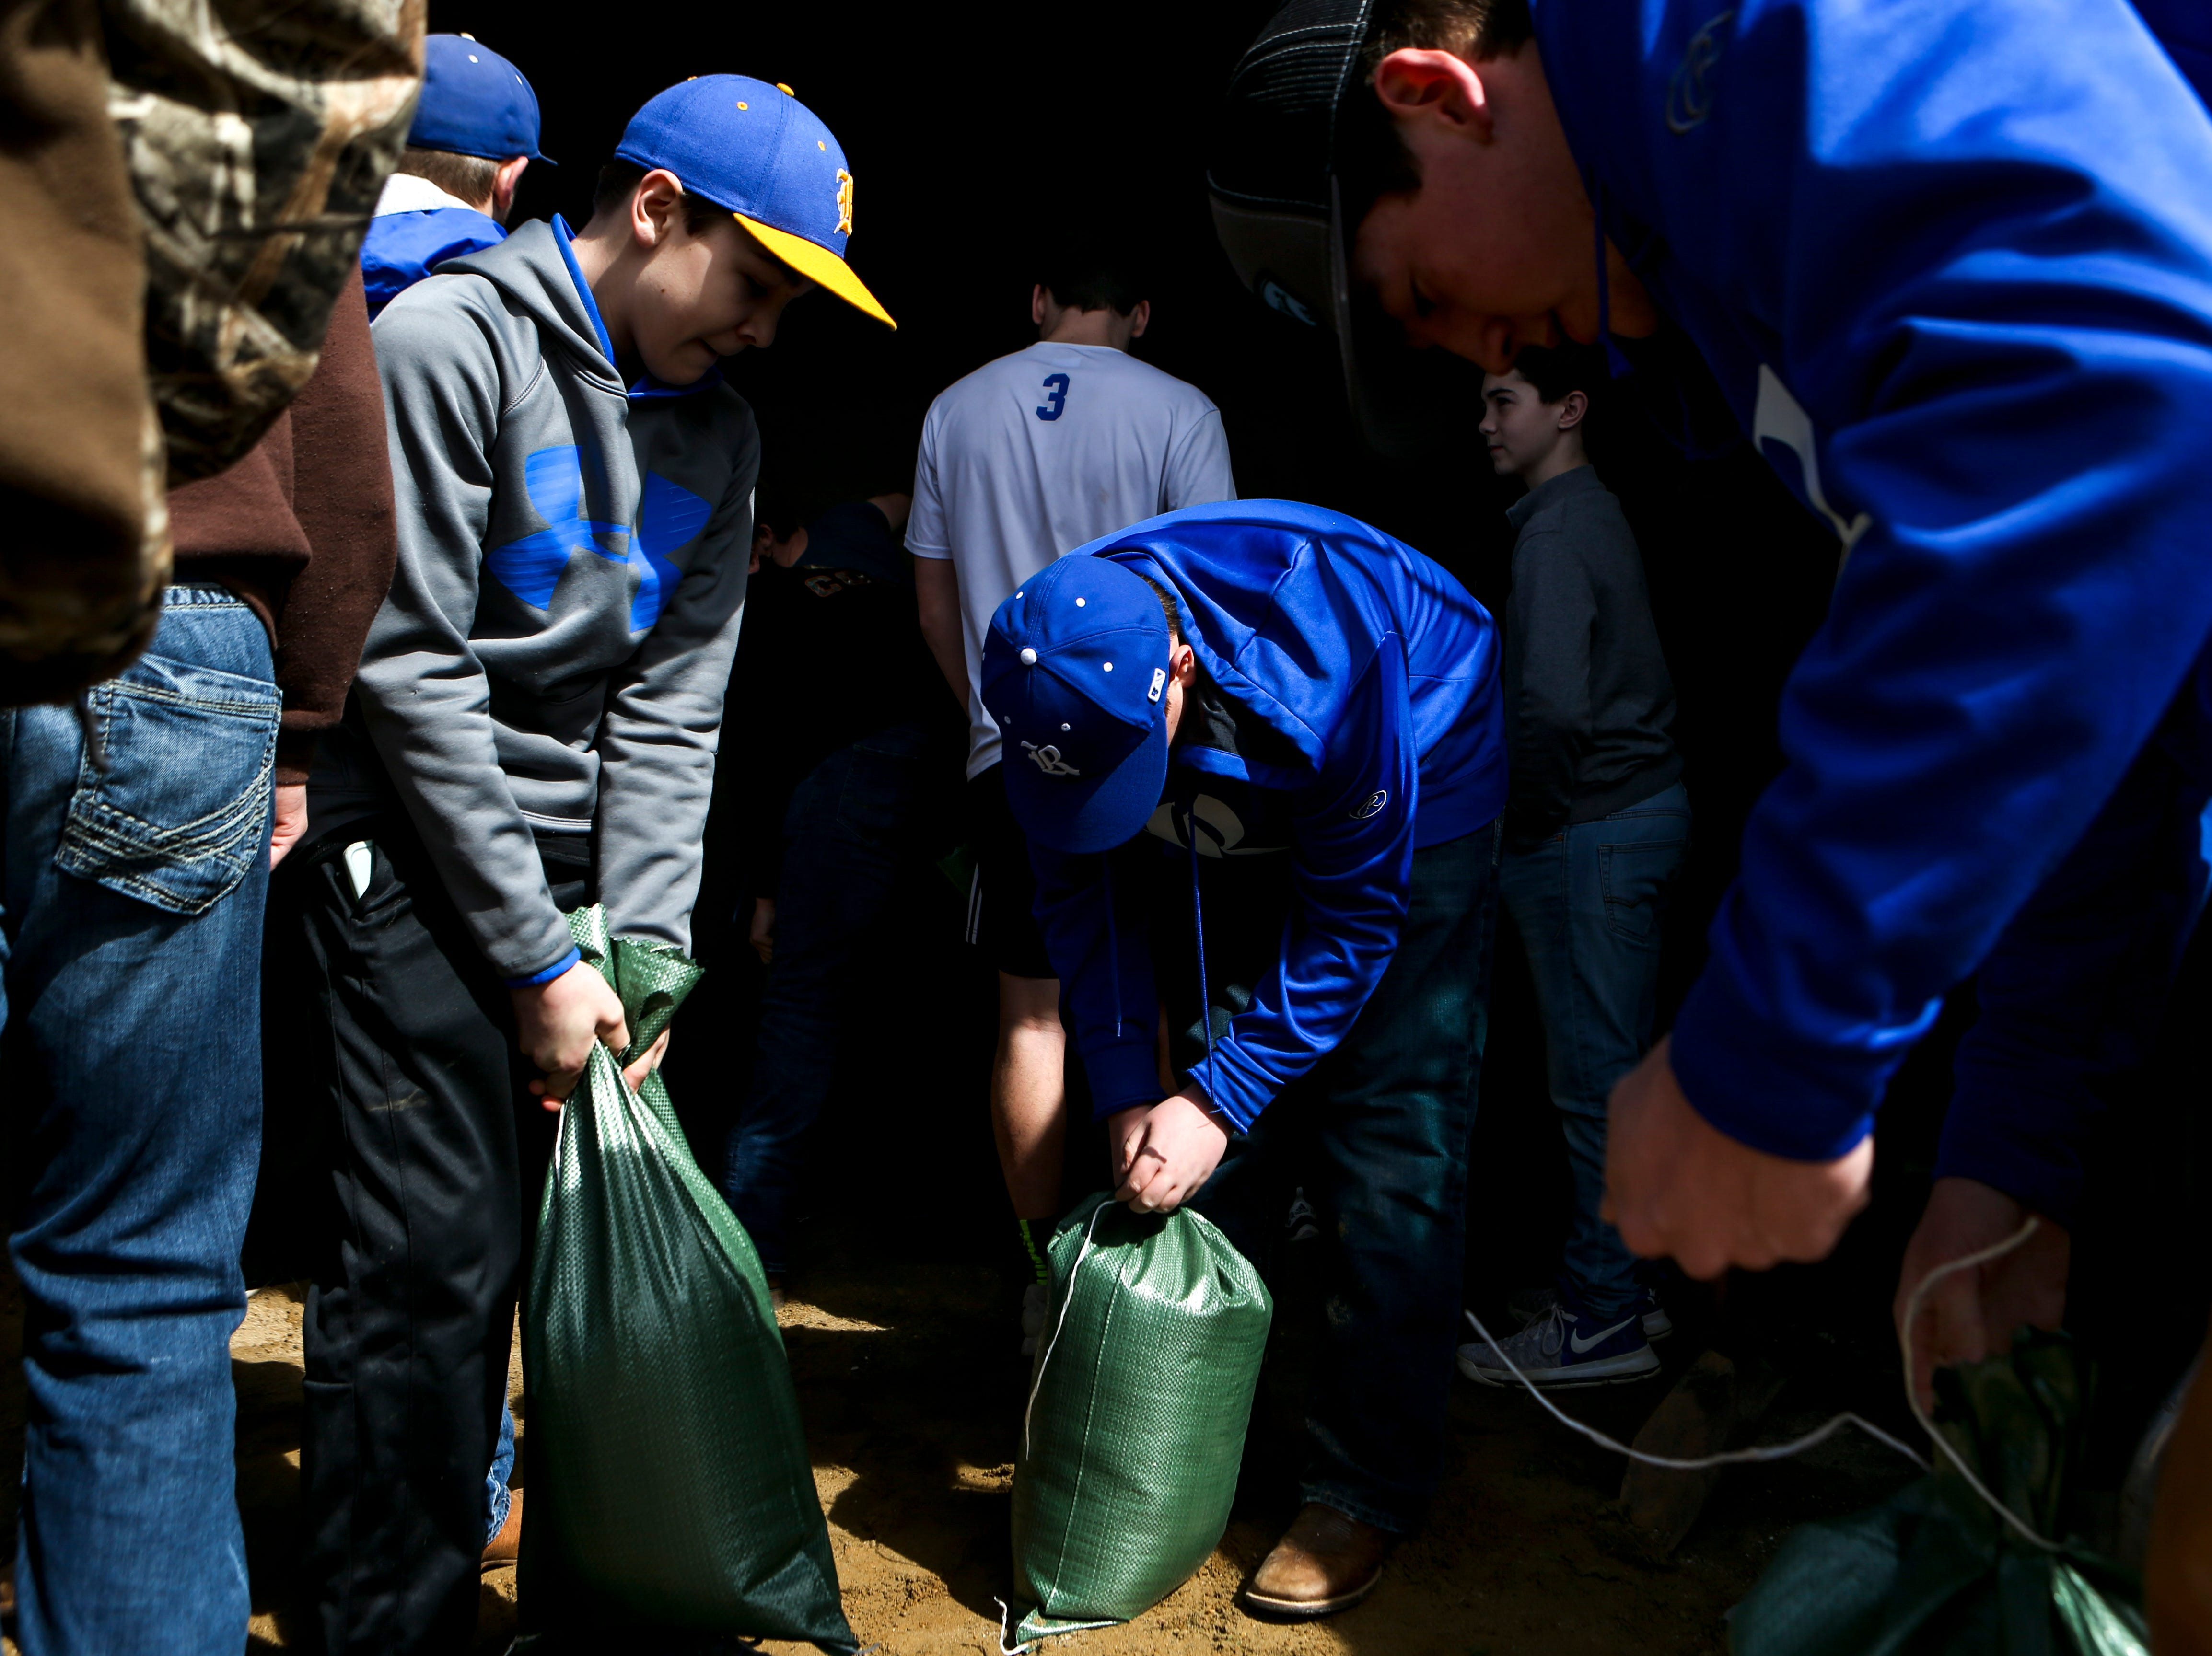 Riverside High School football and baseball players fill up and prepare sand bags for any residents that need to use them at Decatur County Highway Department, in Decaturville, Tenn., on Monday, Feb. 25, 2019.